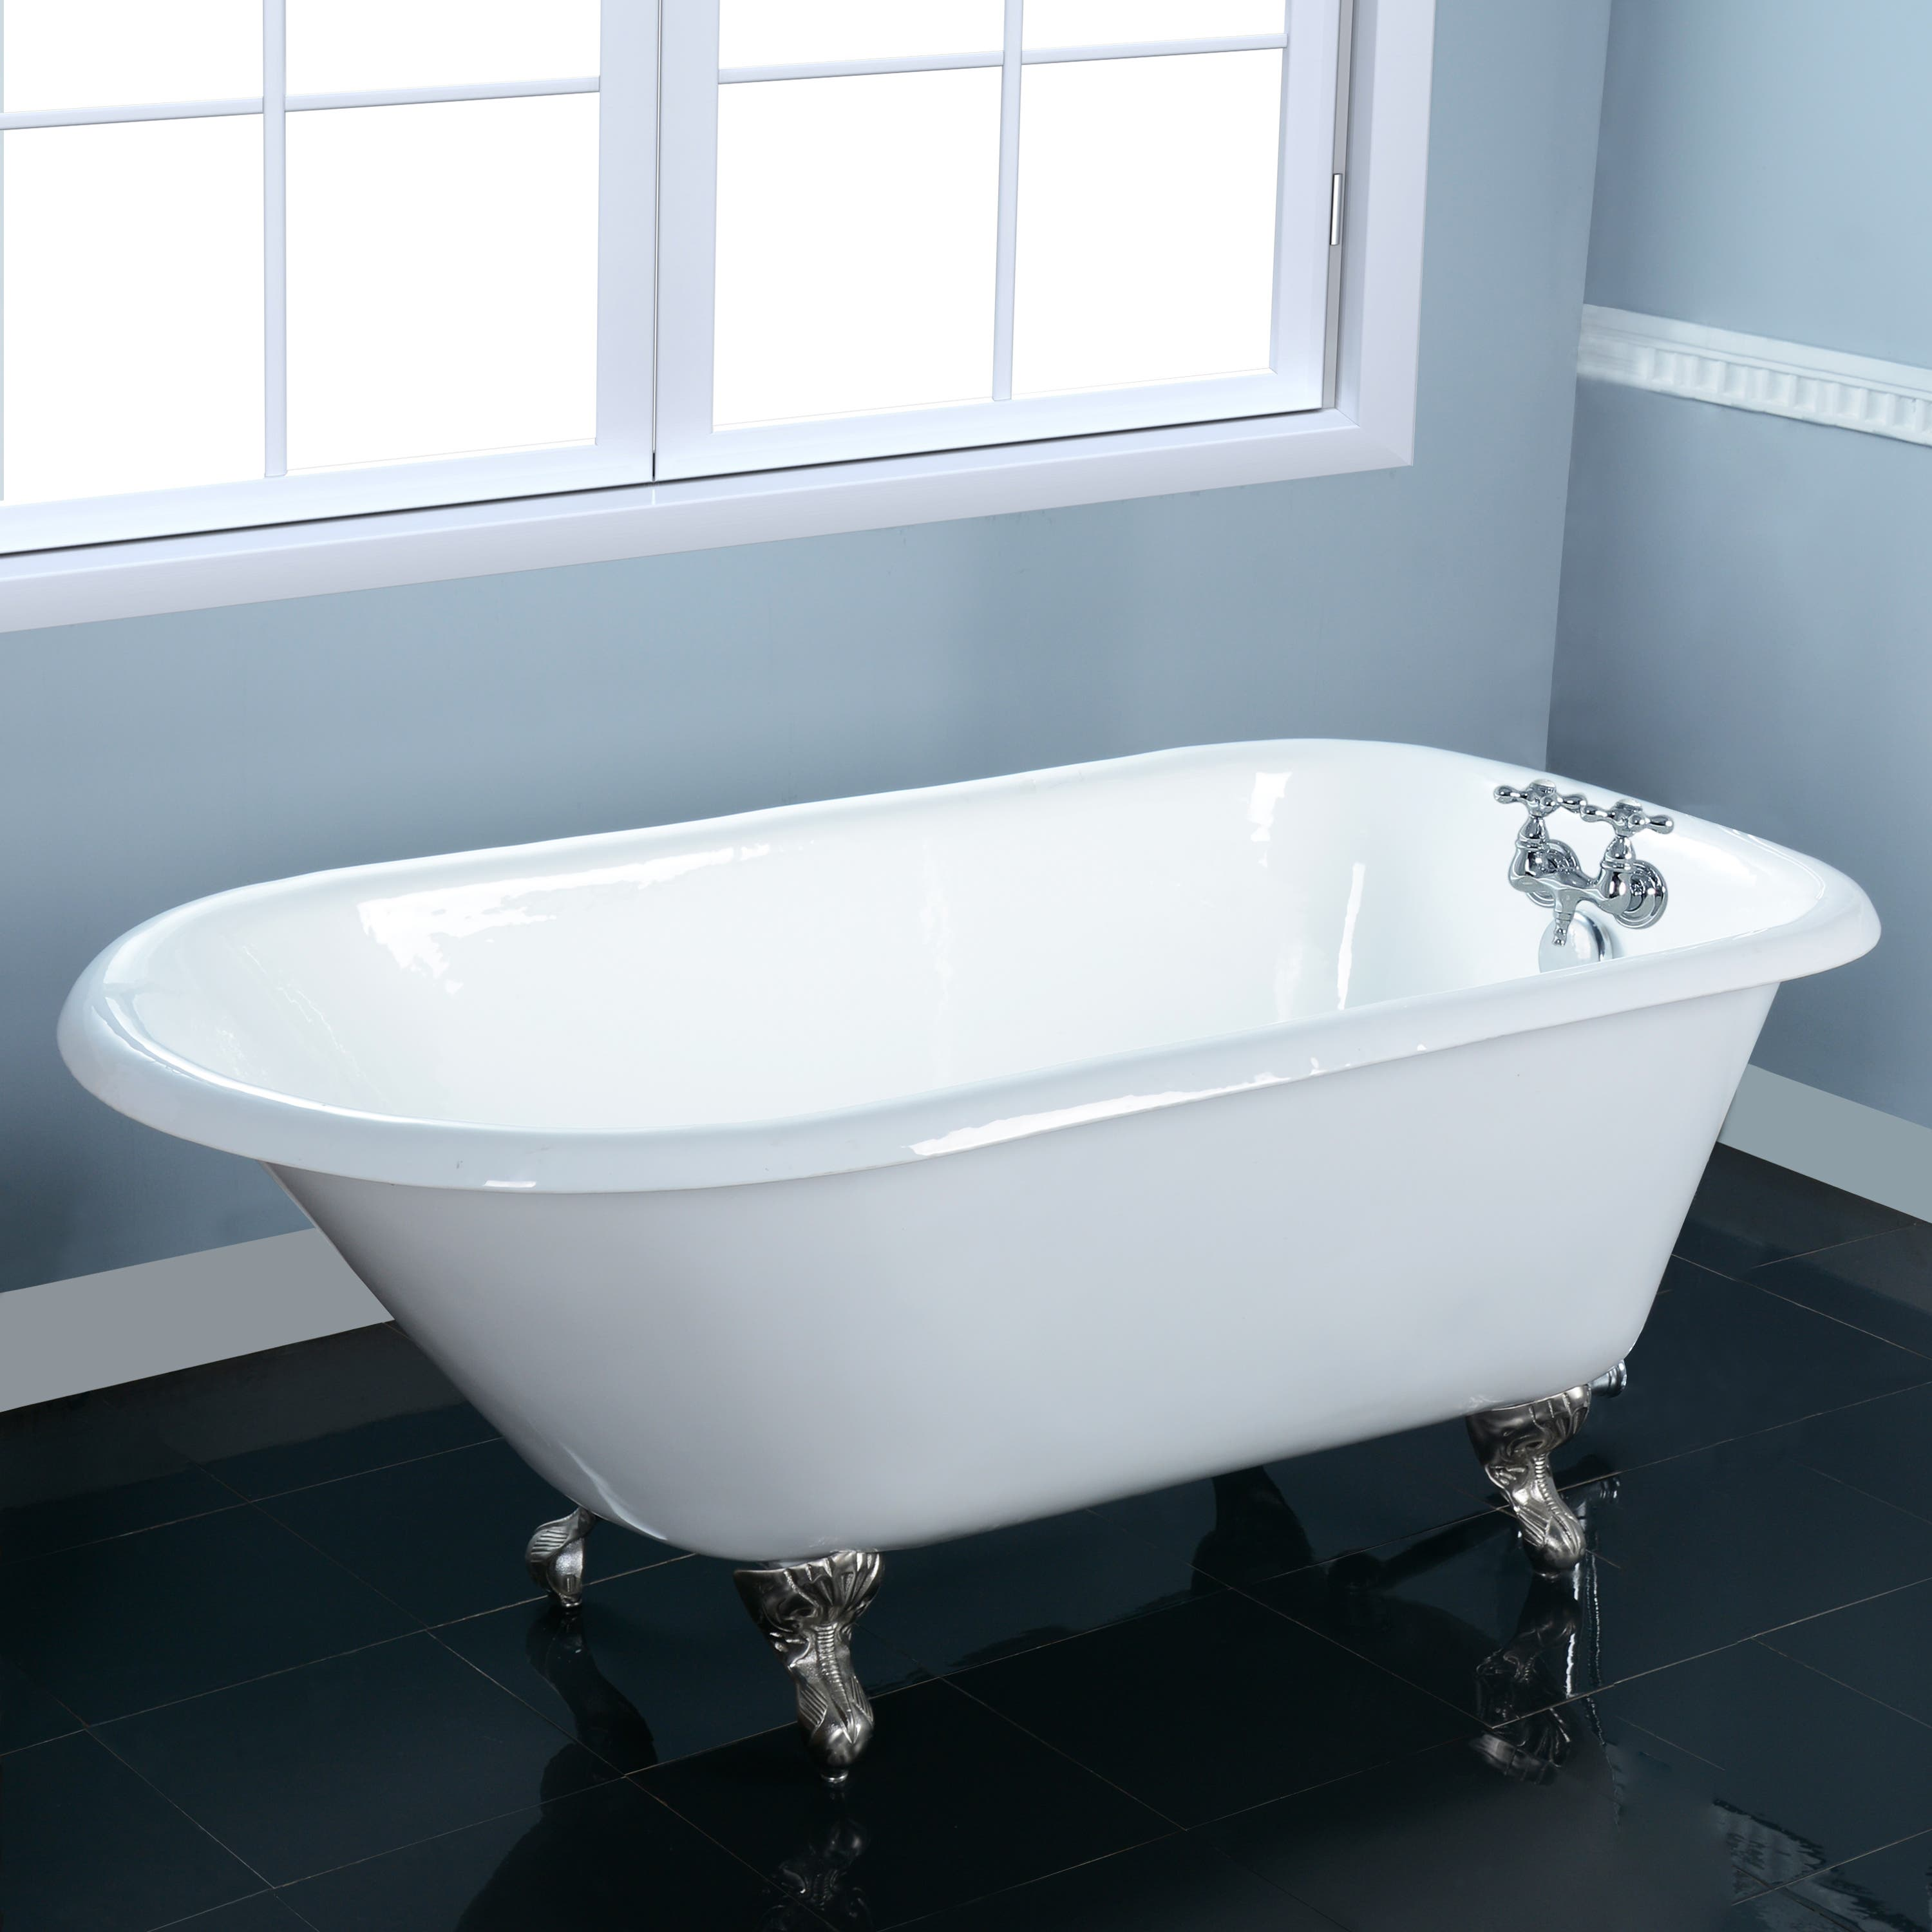 Aqua Eden Vct3d603019nt8 60 Inch Cast Iron Roll Top Clawfoot Tub With 3 3 8 Inch Wall Drillings White Brushed Nickel